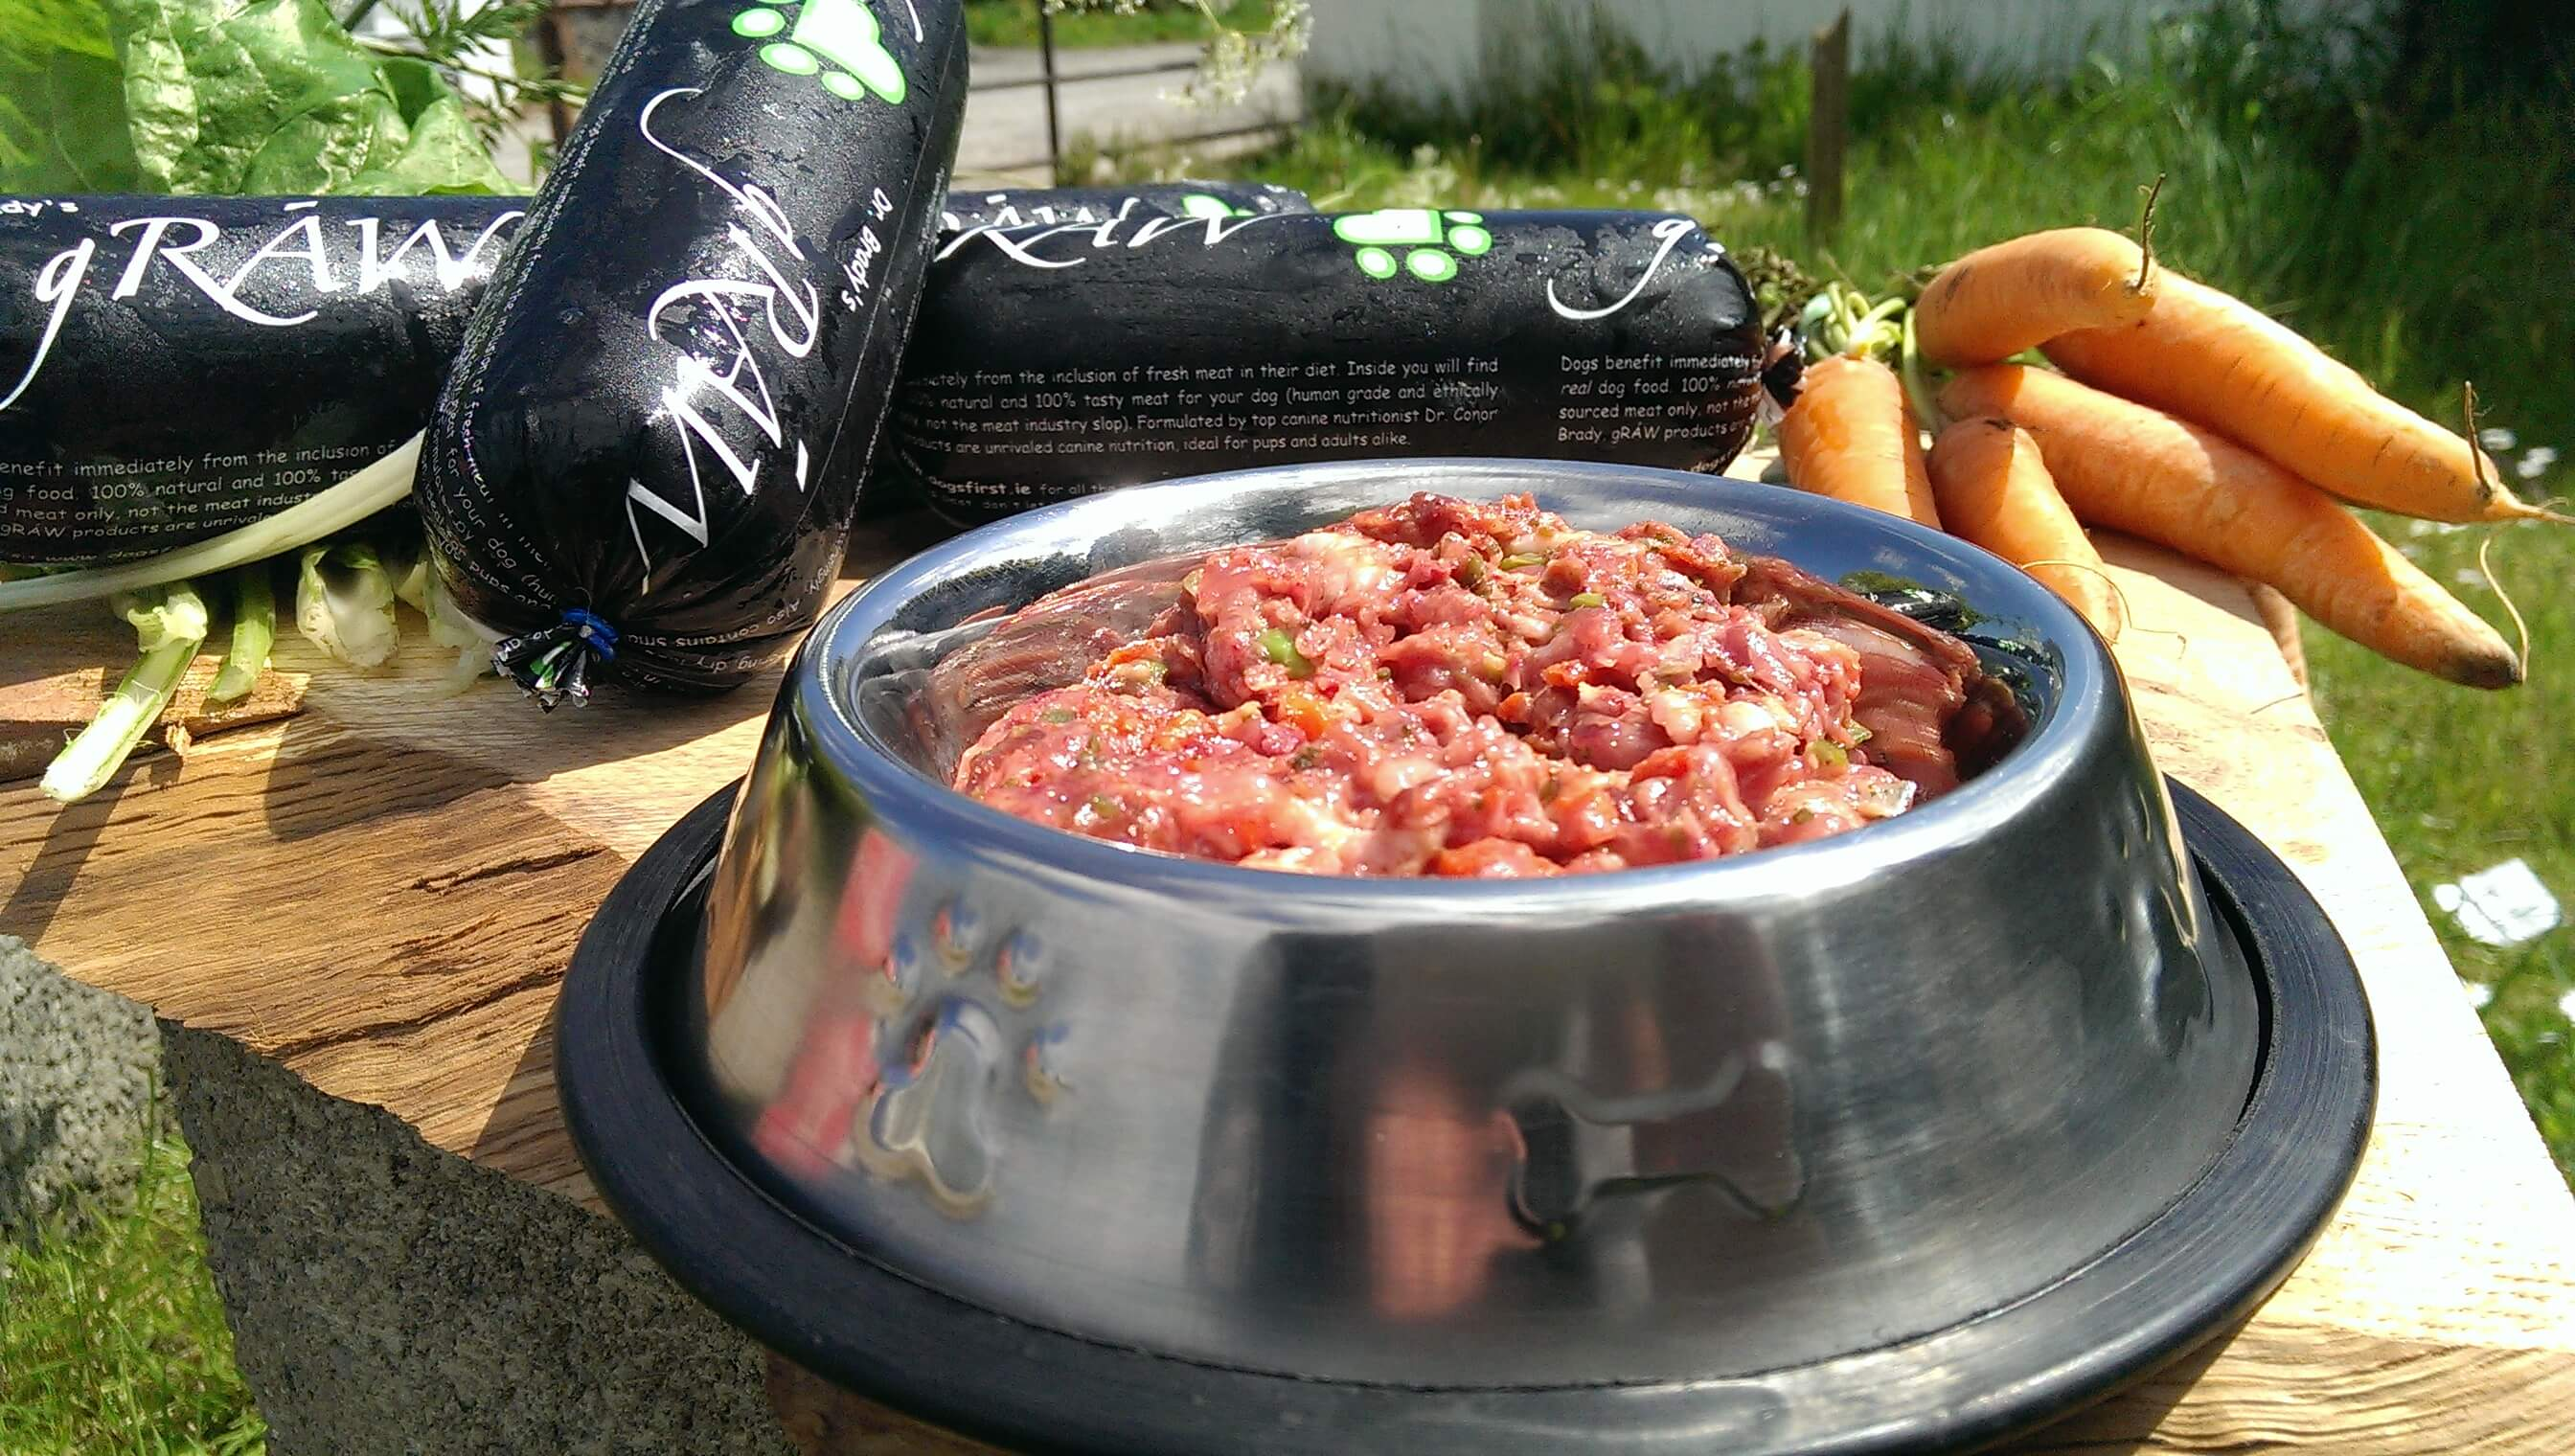 A bowl of raw dog food with some Graw Dog Food chubs beside it